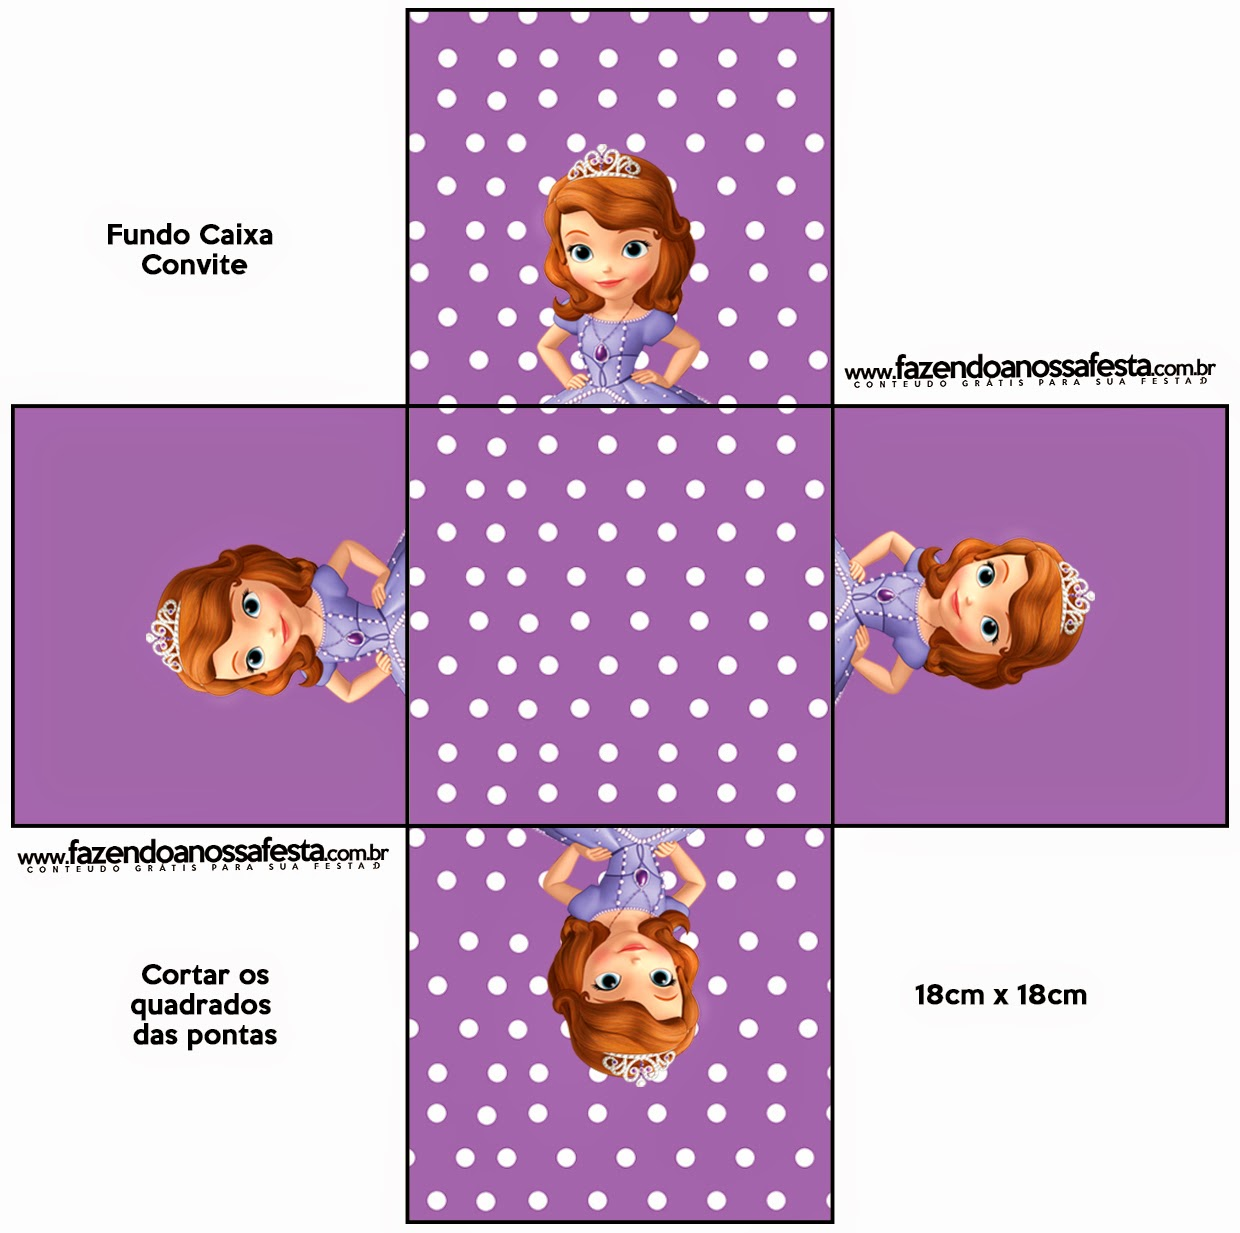 Sofia the First: Free Printable Boxes.   Oh My Fiesta! in english